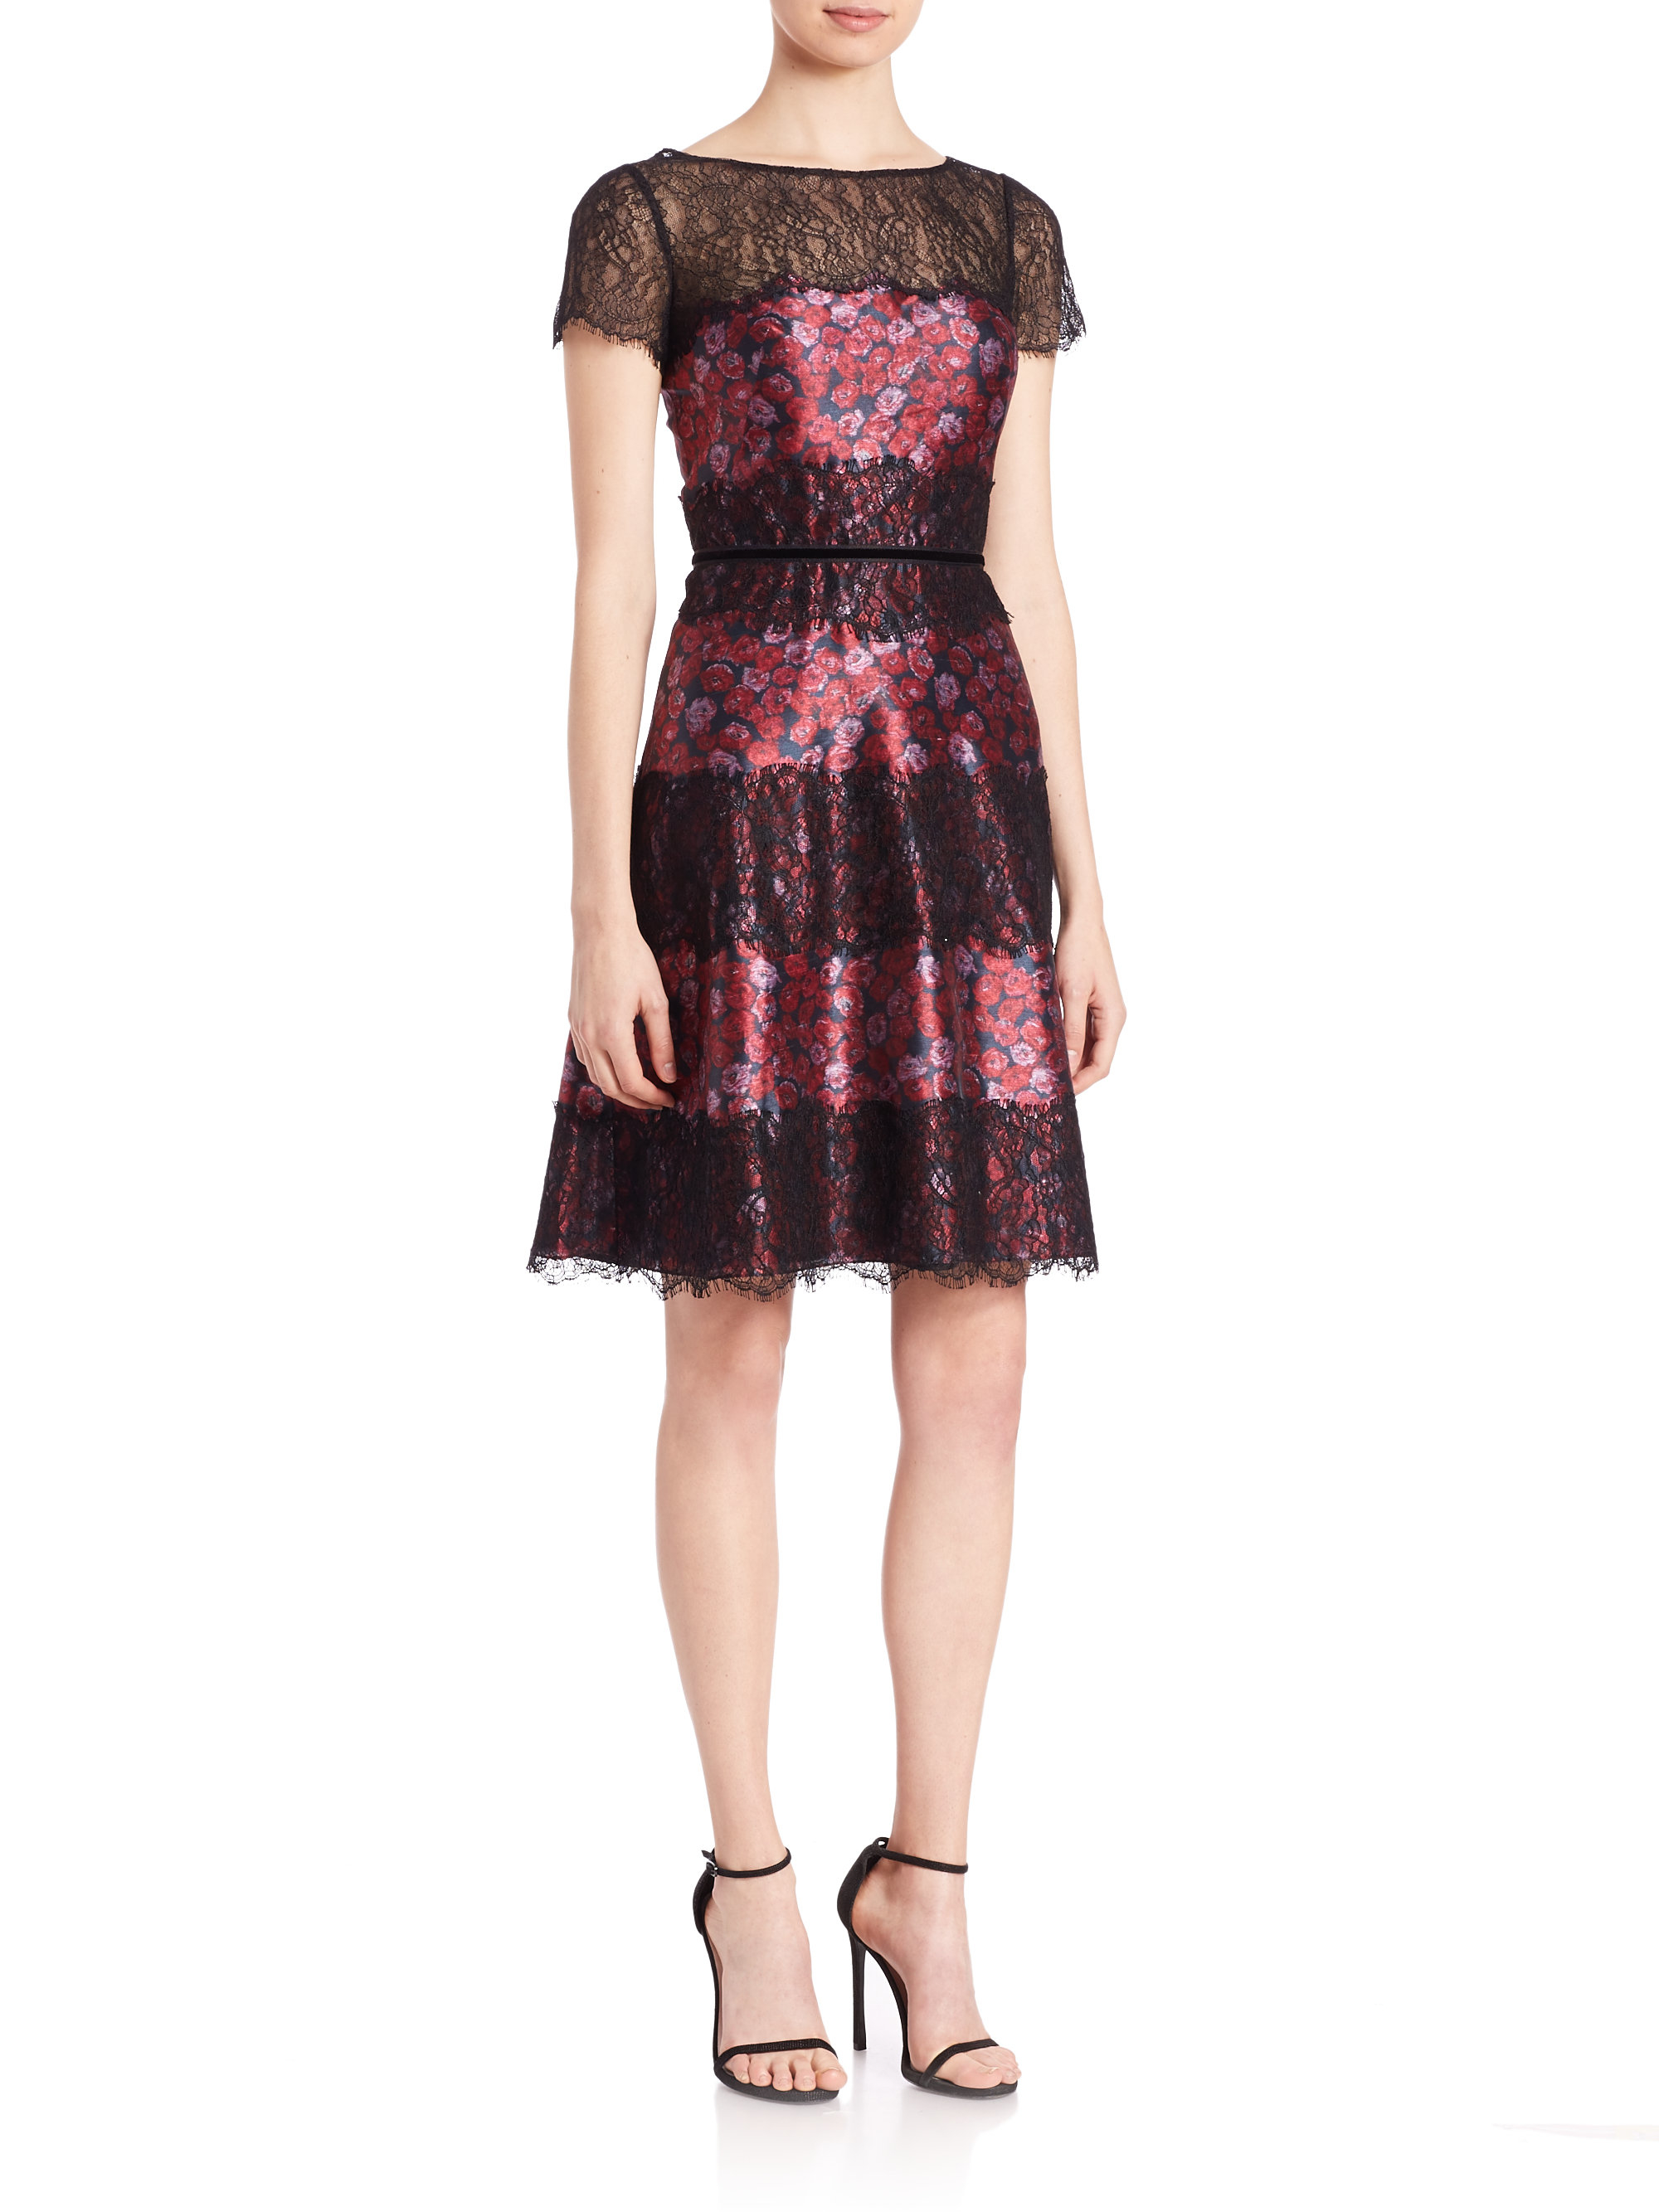 Lyst - Kay Unger Floral Shantung Lace Dress